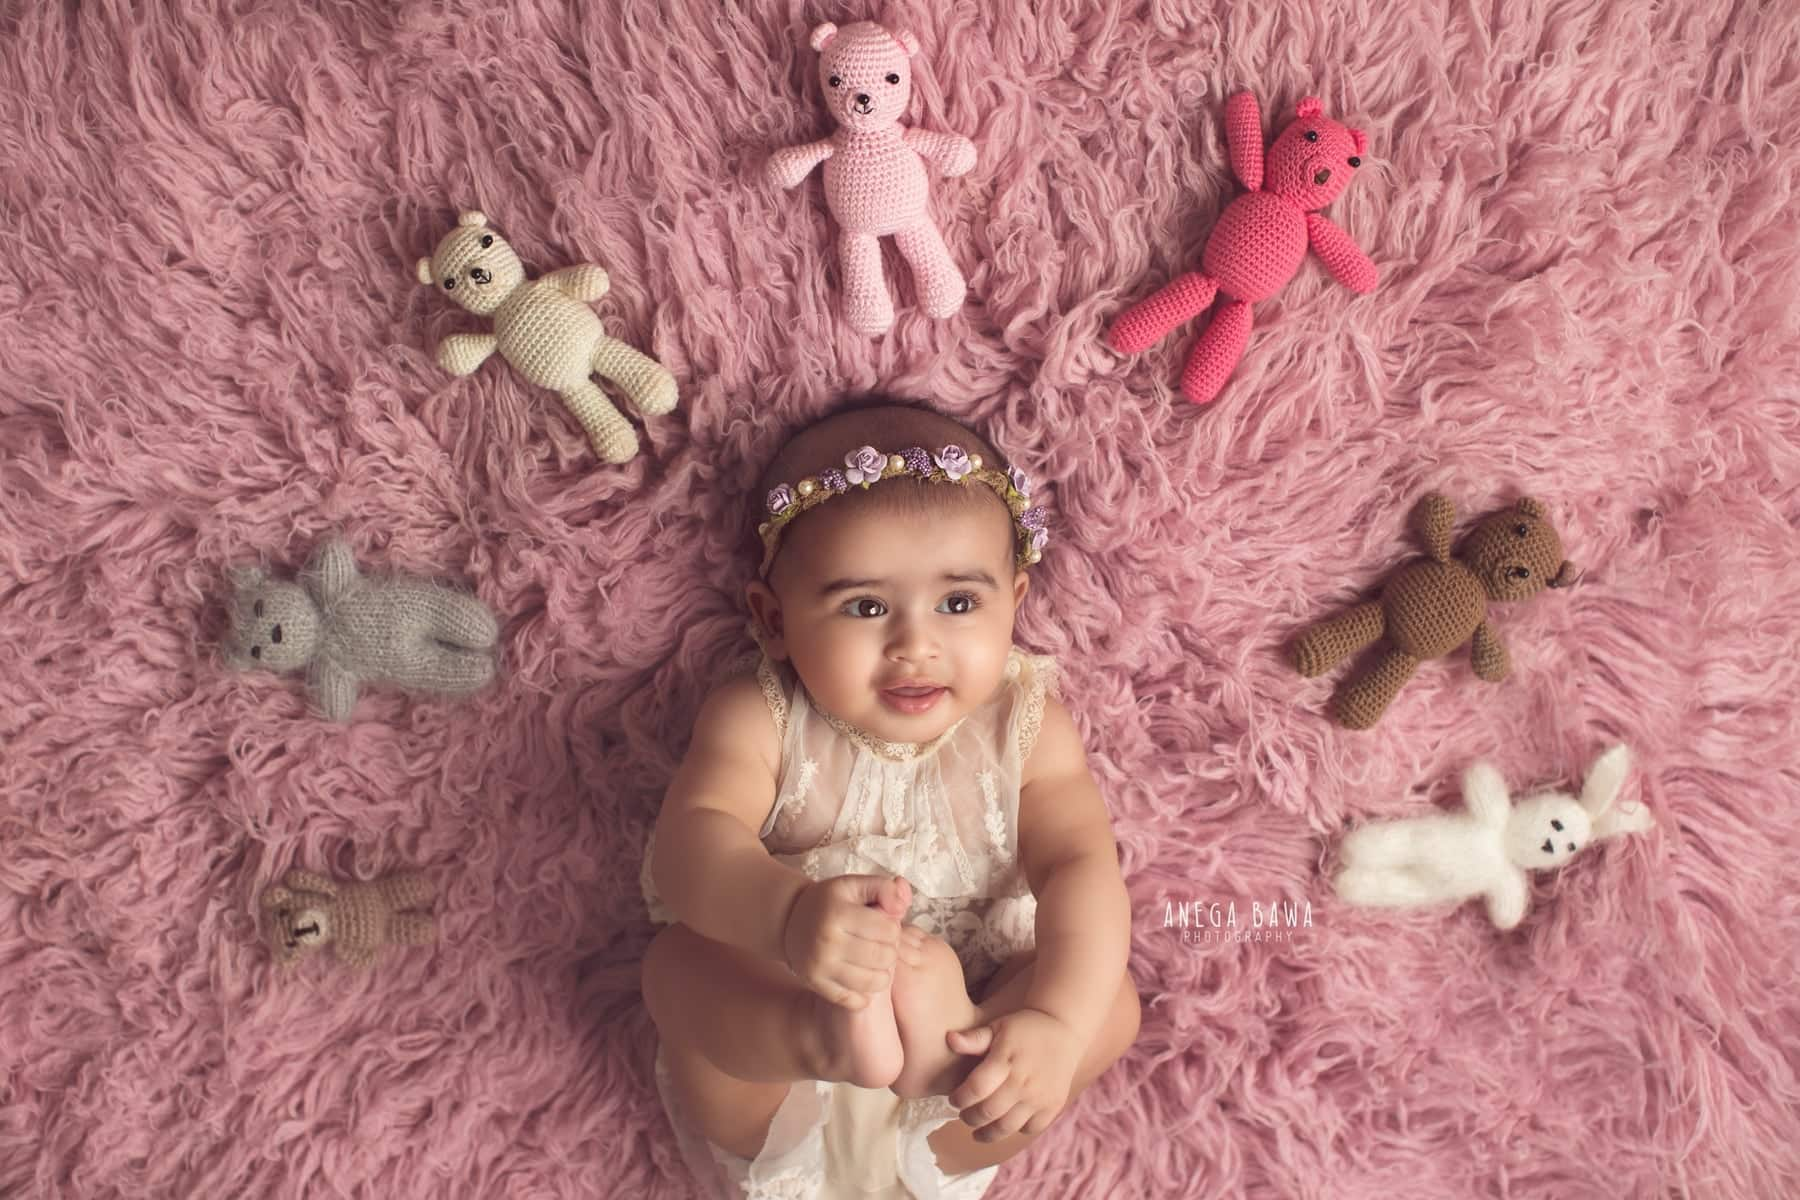 242101-purple-background-toys-baby-photography-delhi-4-5-6-months-baby-photoshoot-gurgaon-anega-bawa